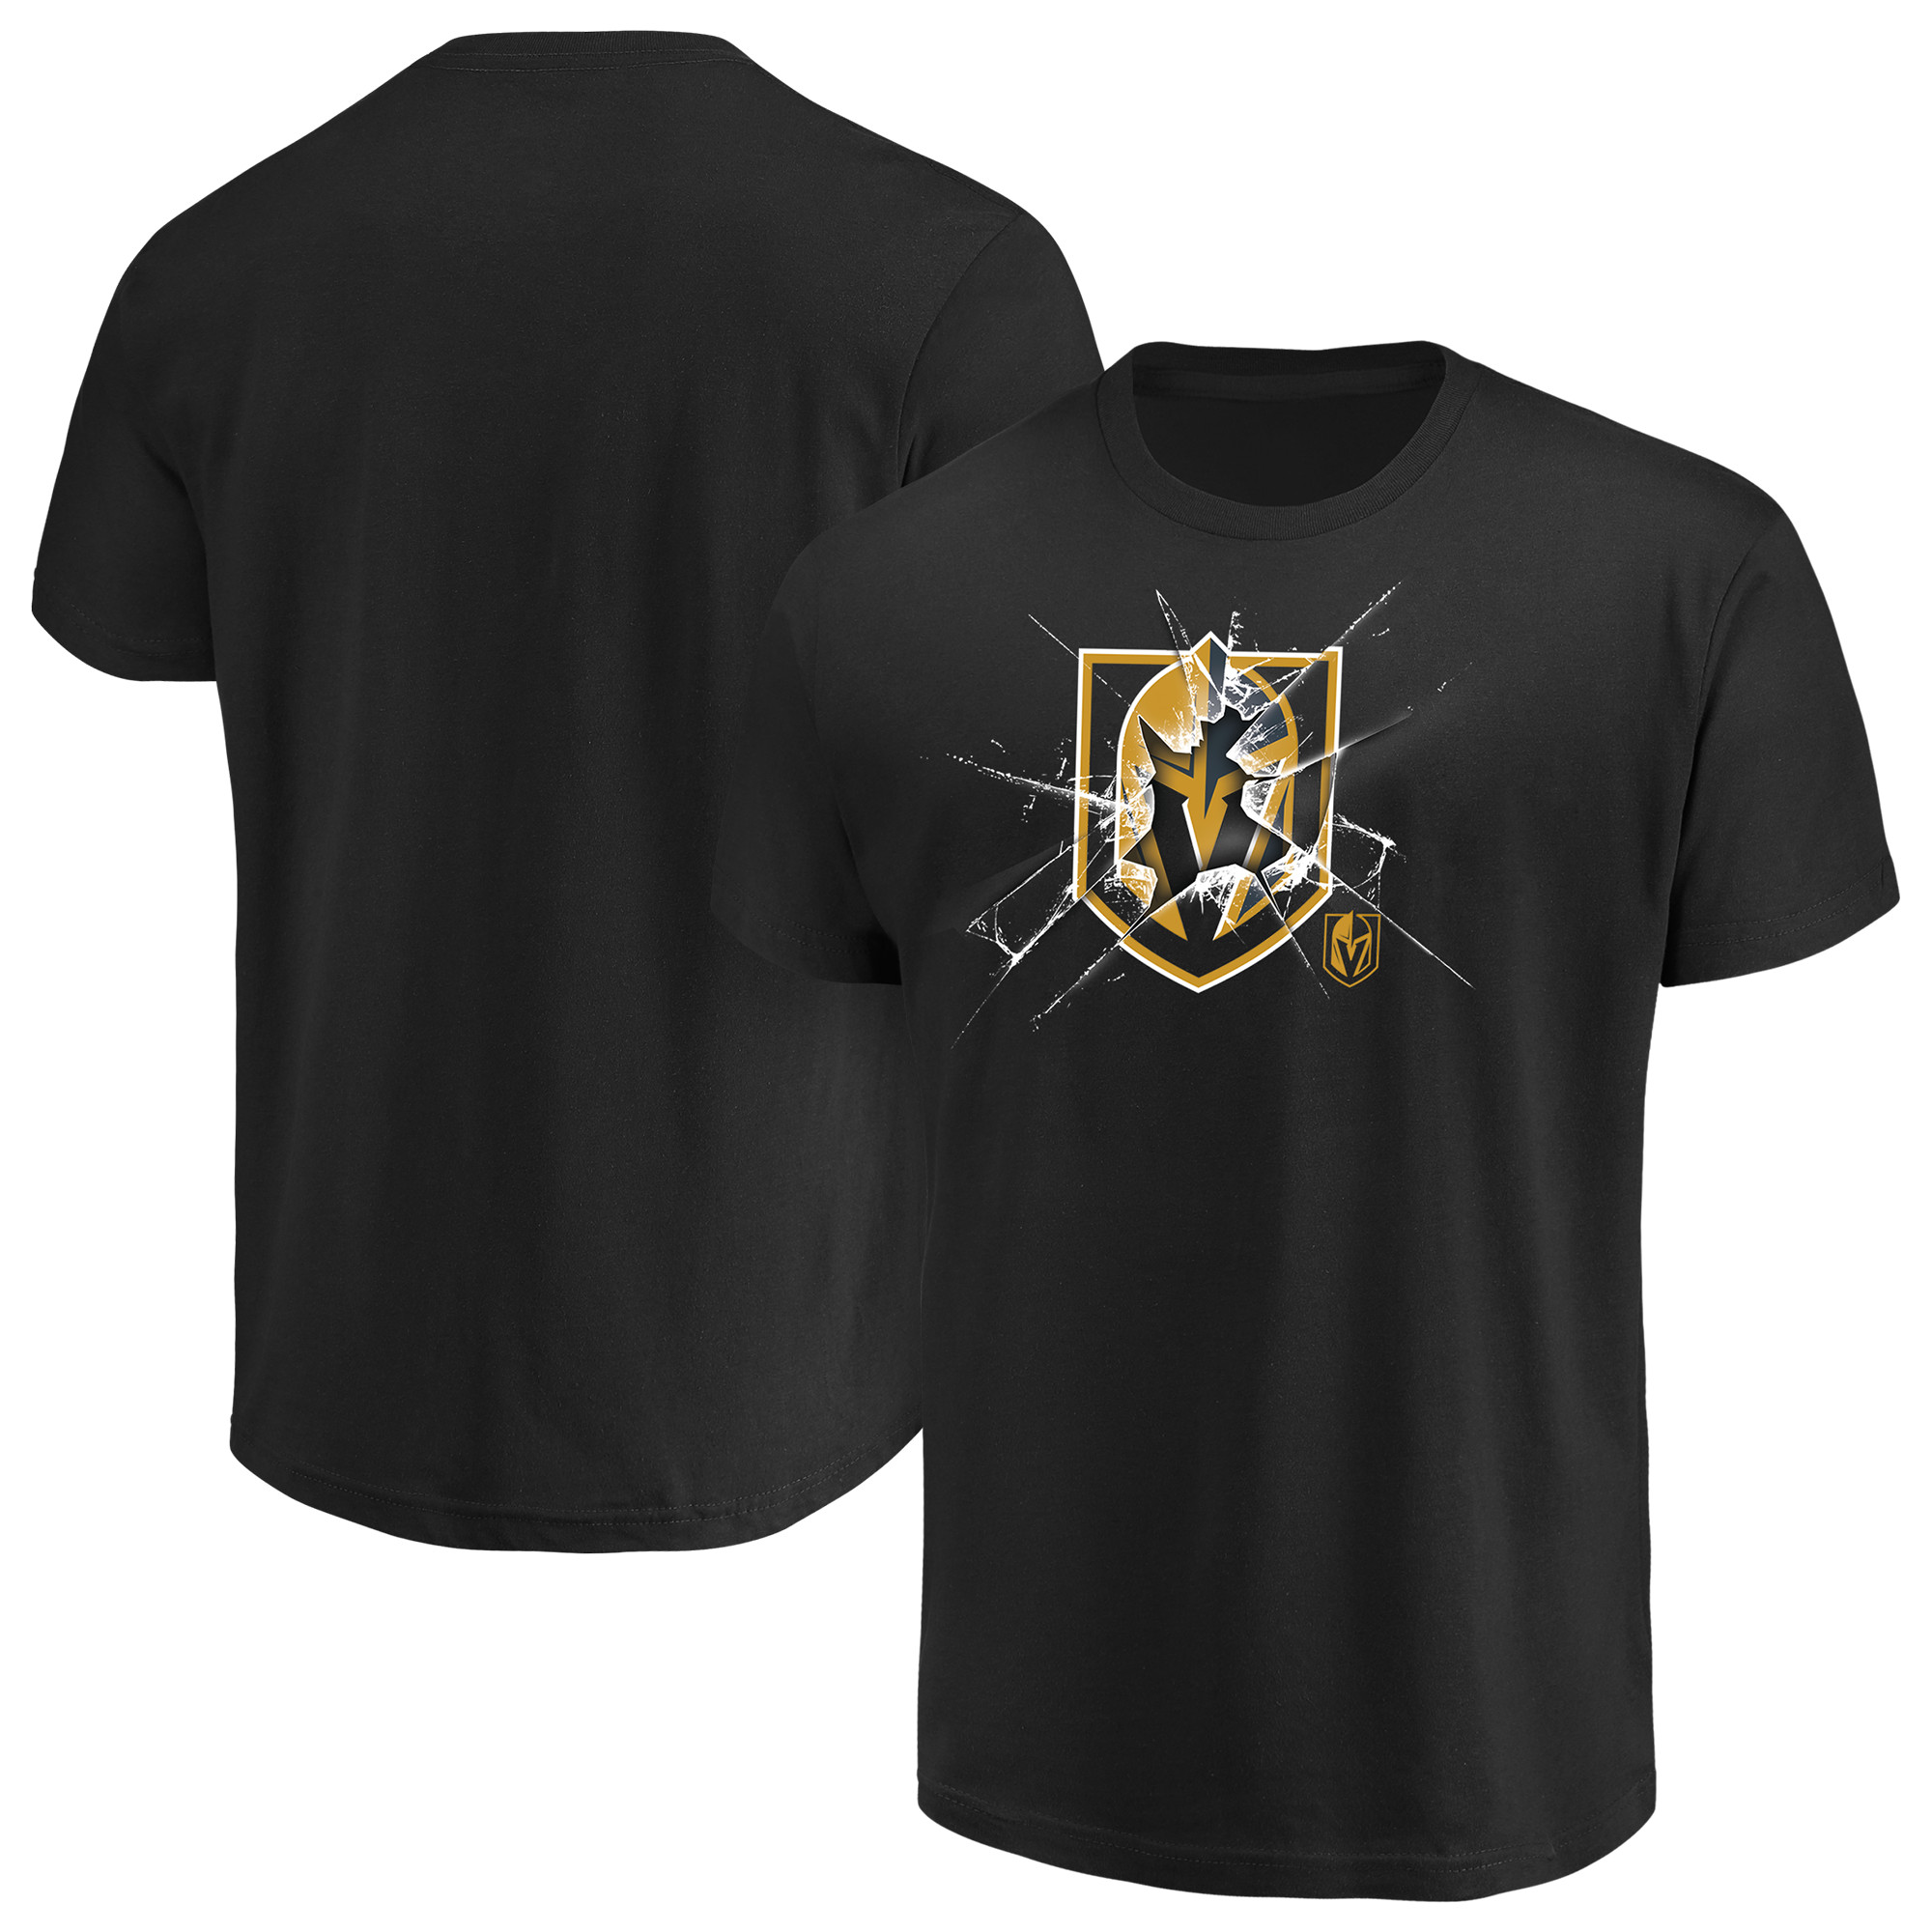 Men's Majestic Black Vegas Golden Knights Poke Check T-Shirt